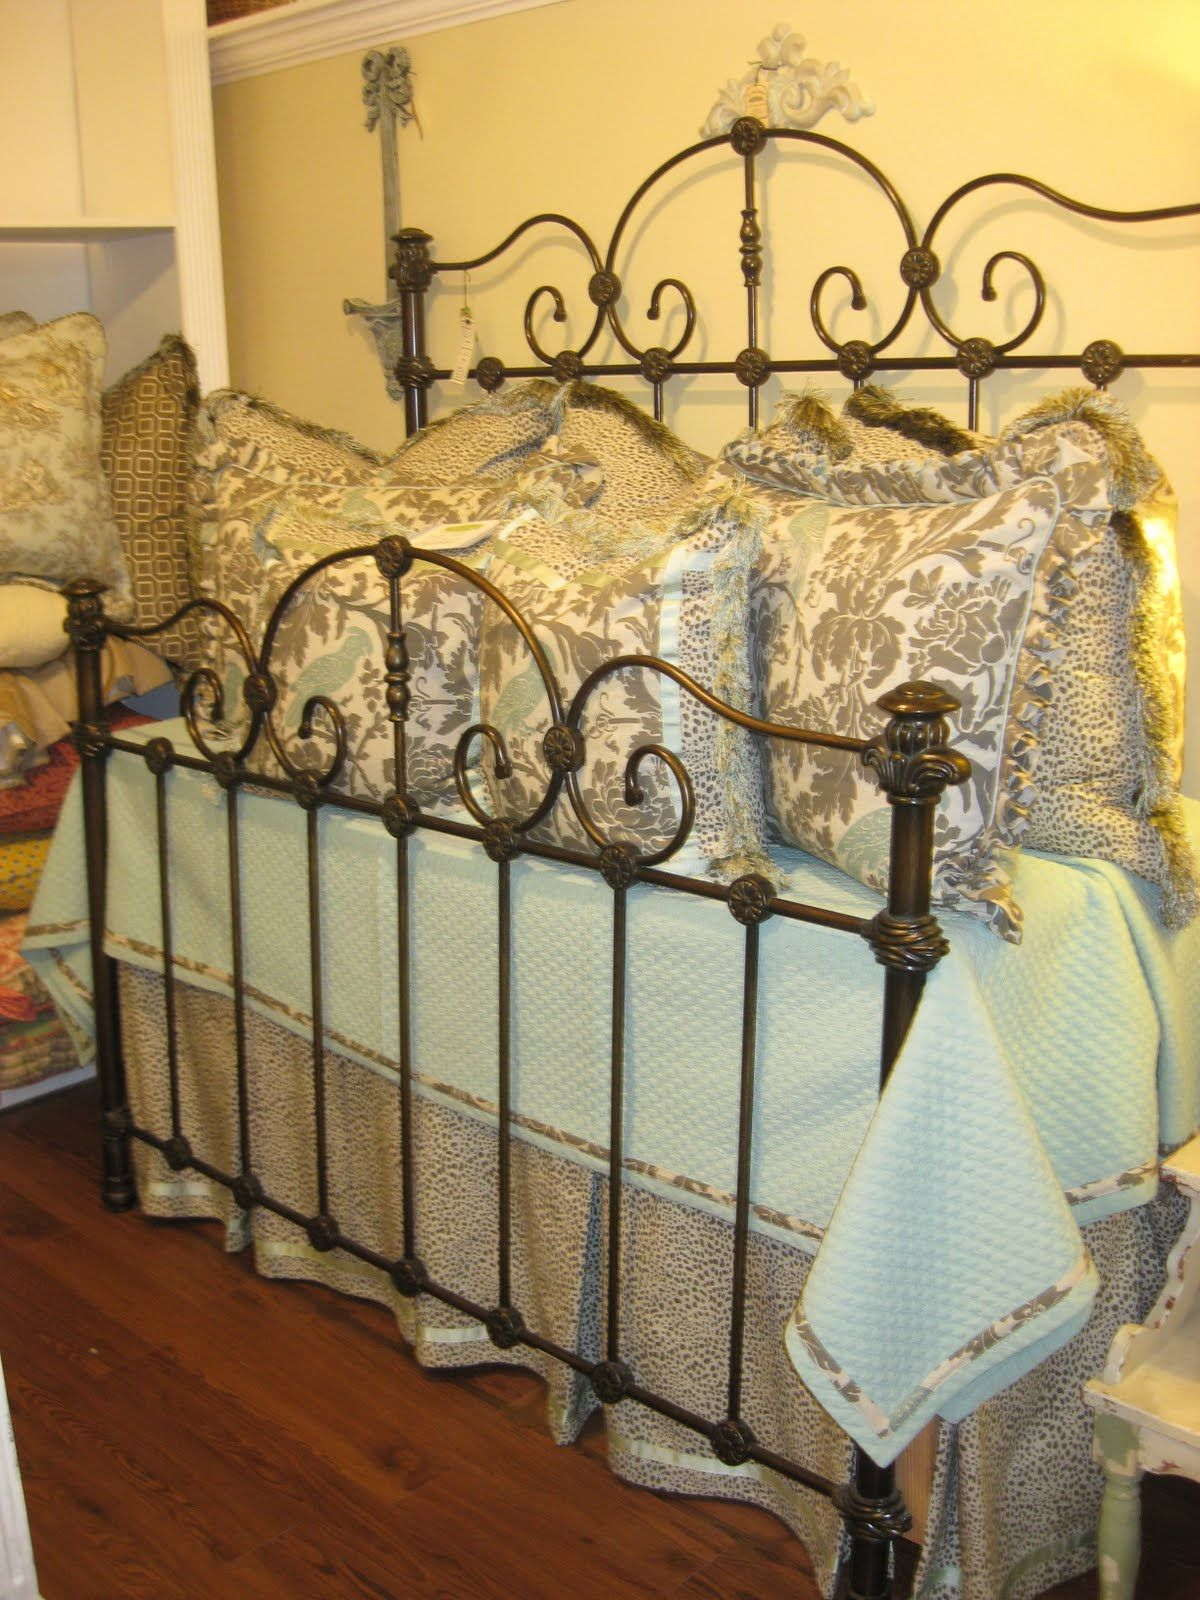 Perfect For Short People Like Me Wrought Iron Beds Home